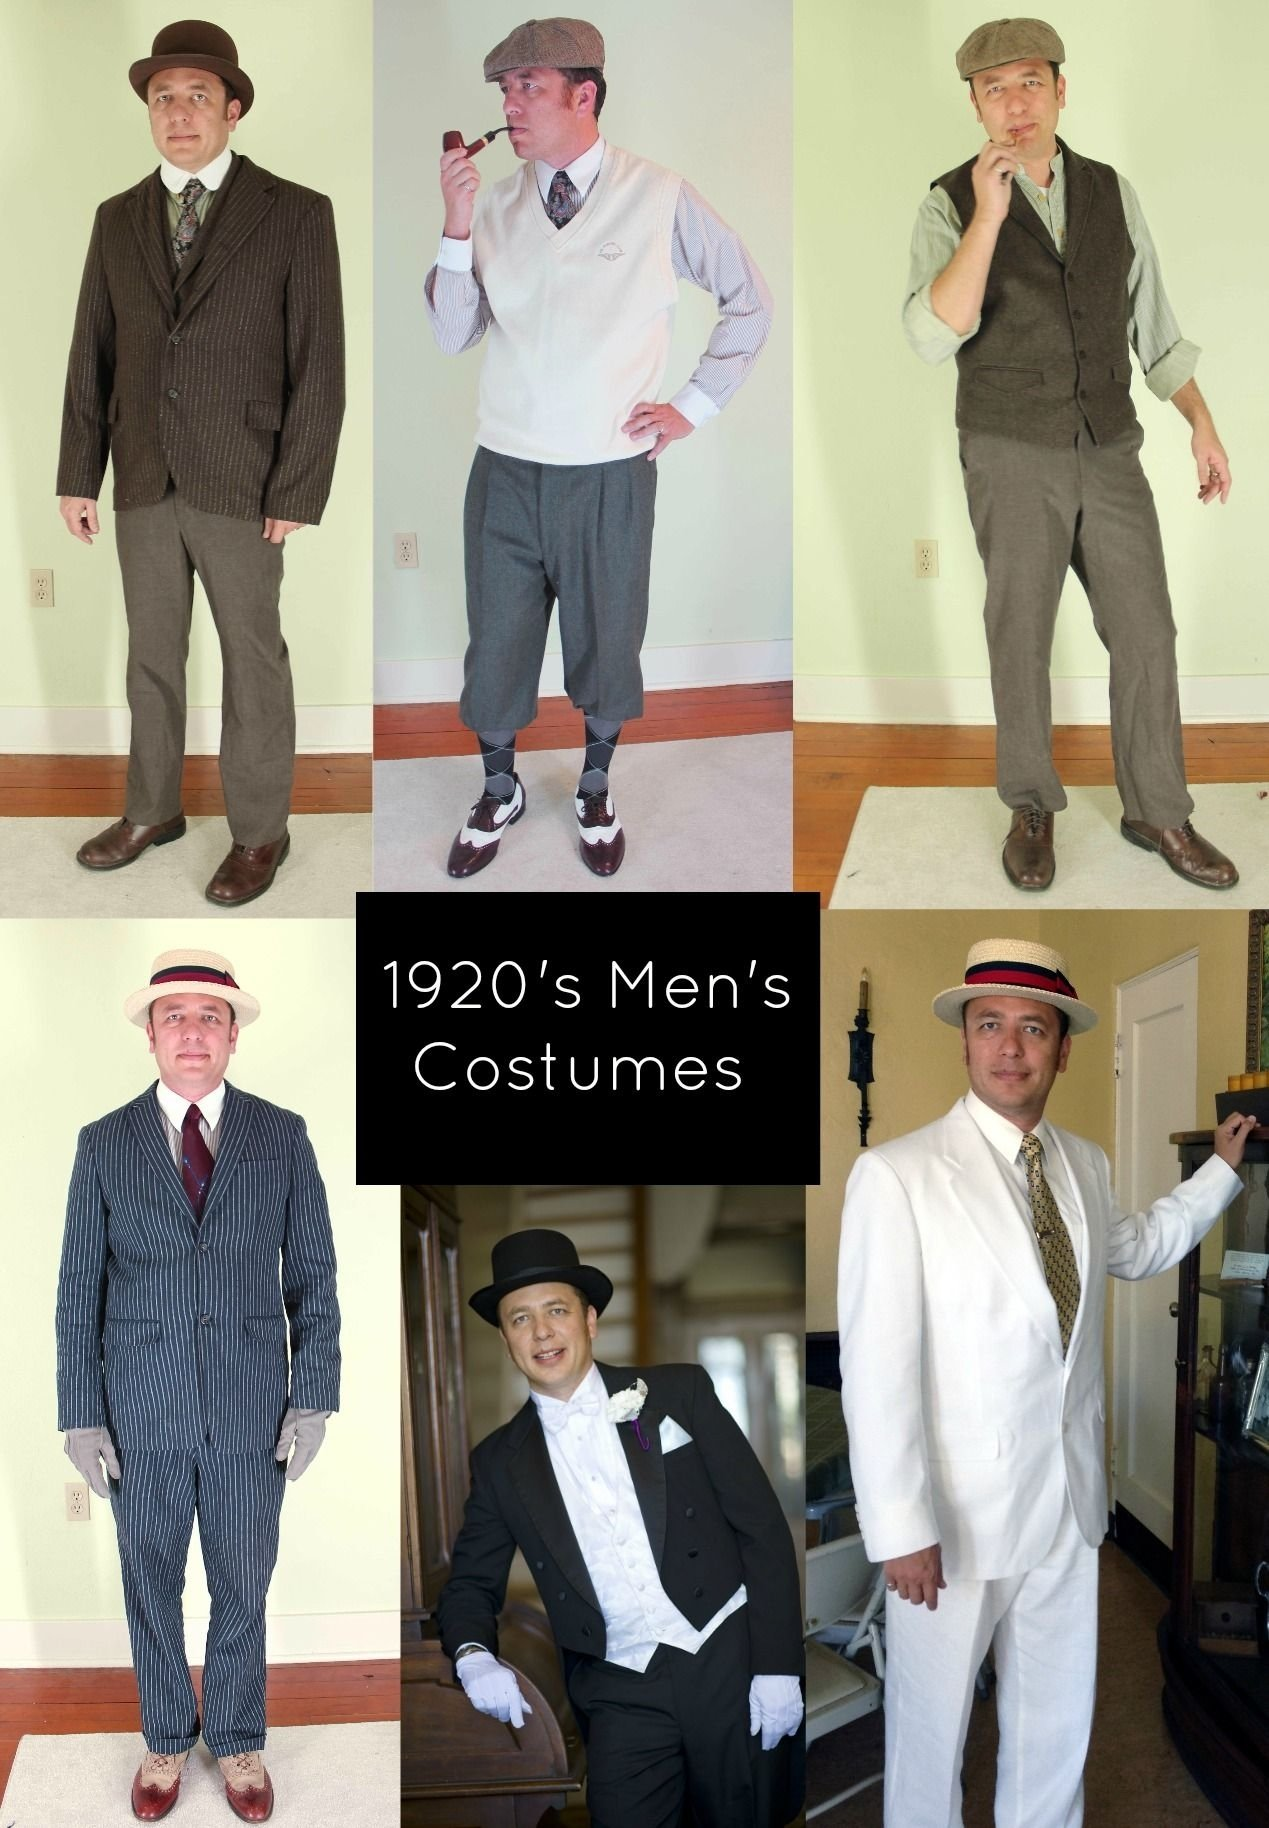 10 Awesome Great Costume Ideas For Men 7 easy 1920s mens costumes ideas gatsby 1920s and modern clothing 2020